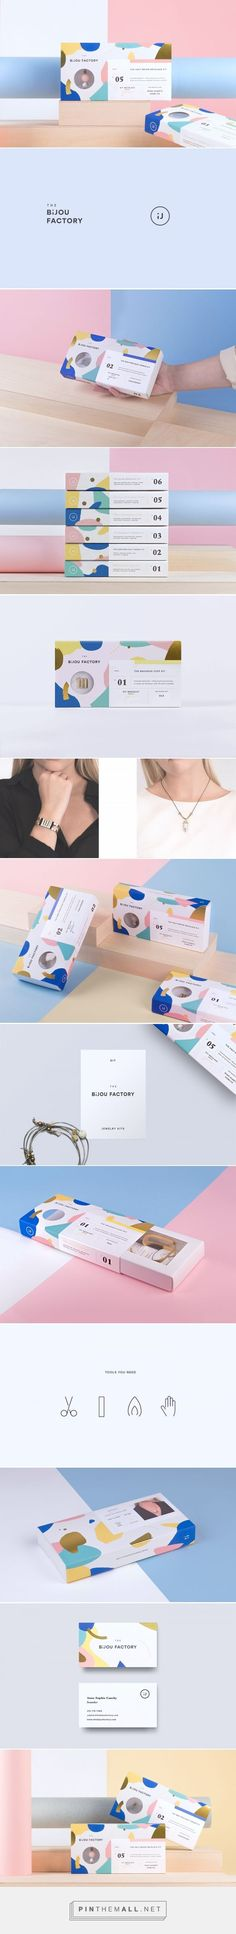 The Bijou Factory DIY Jewelry packaging design by Phoenix The Creative Studio